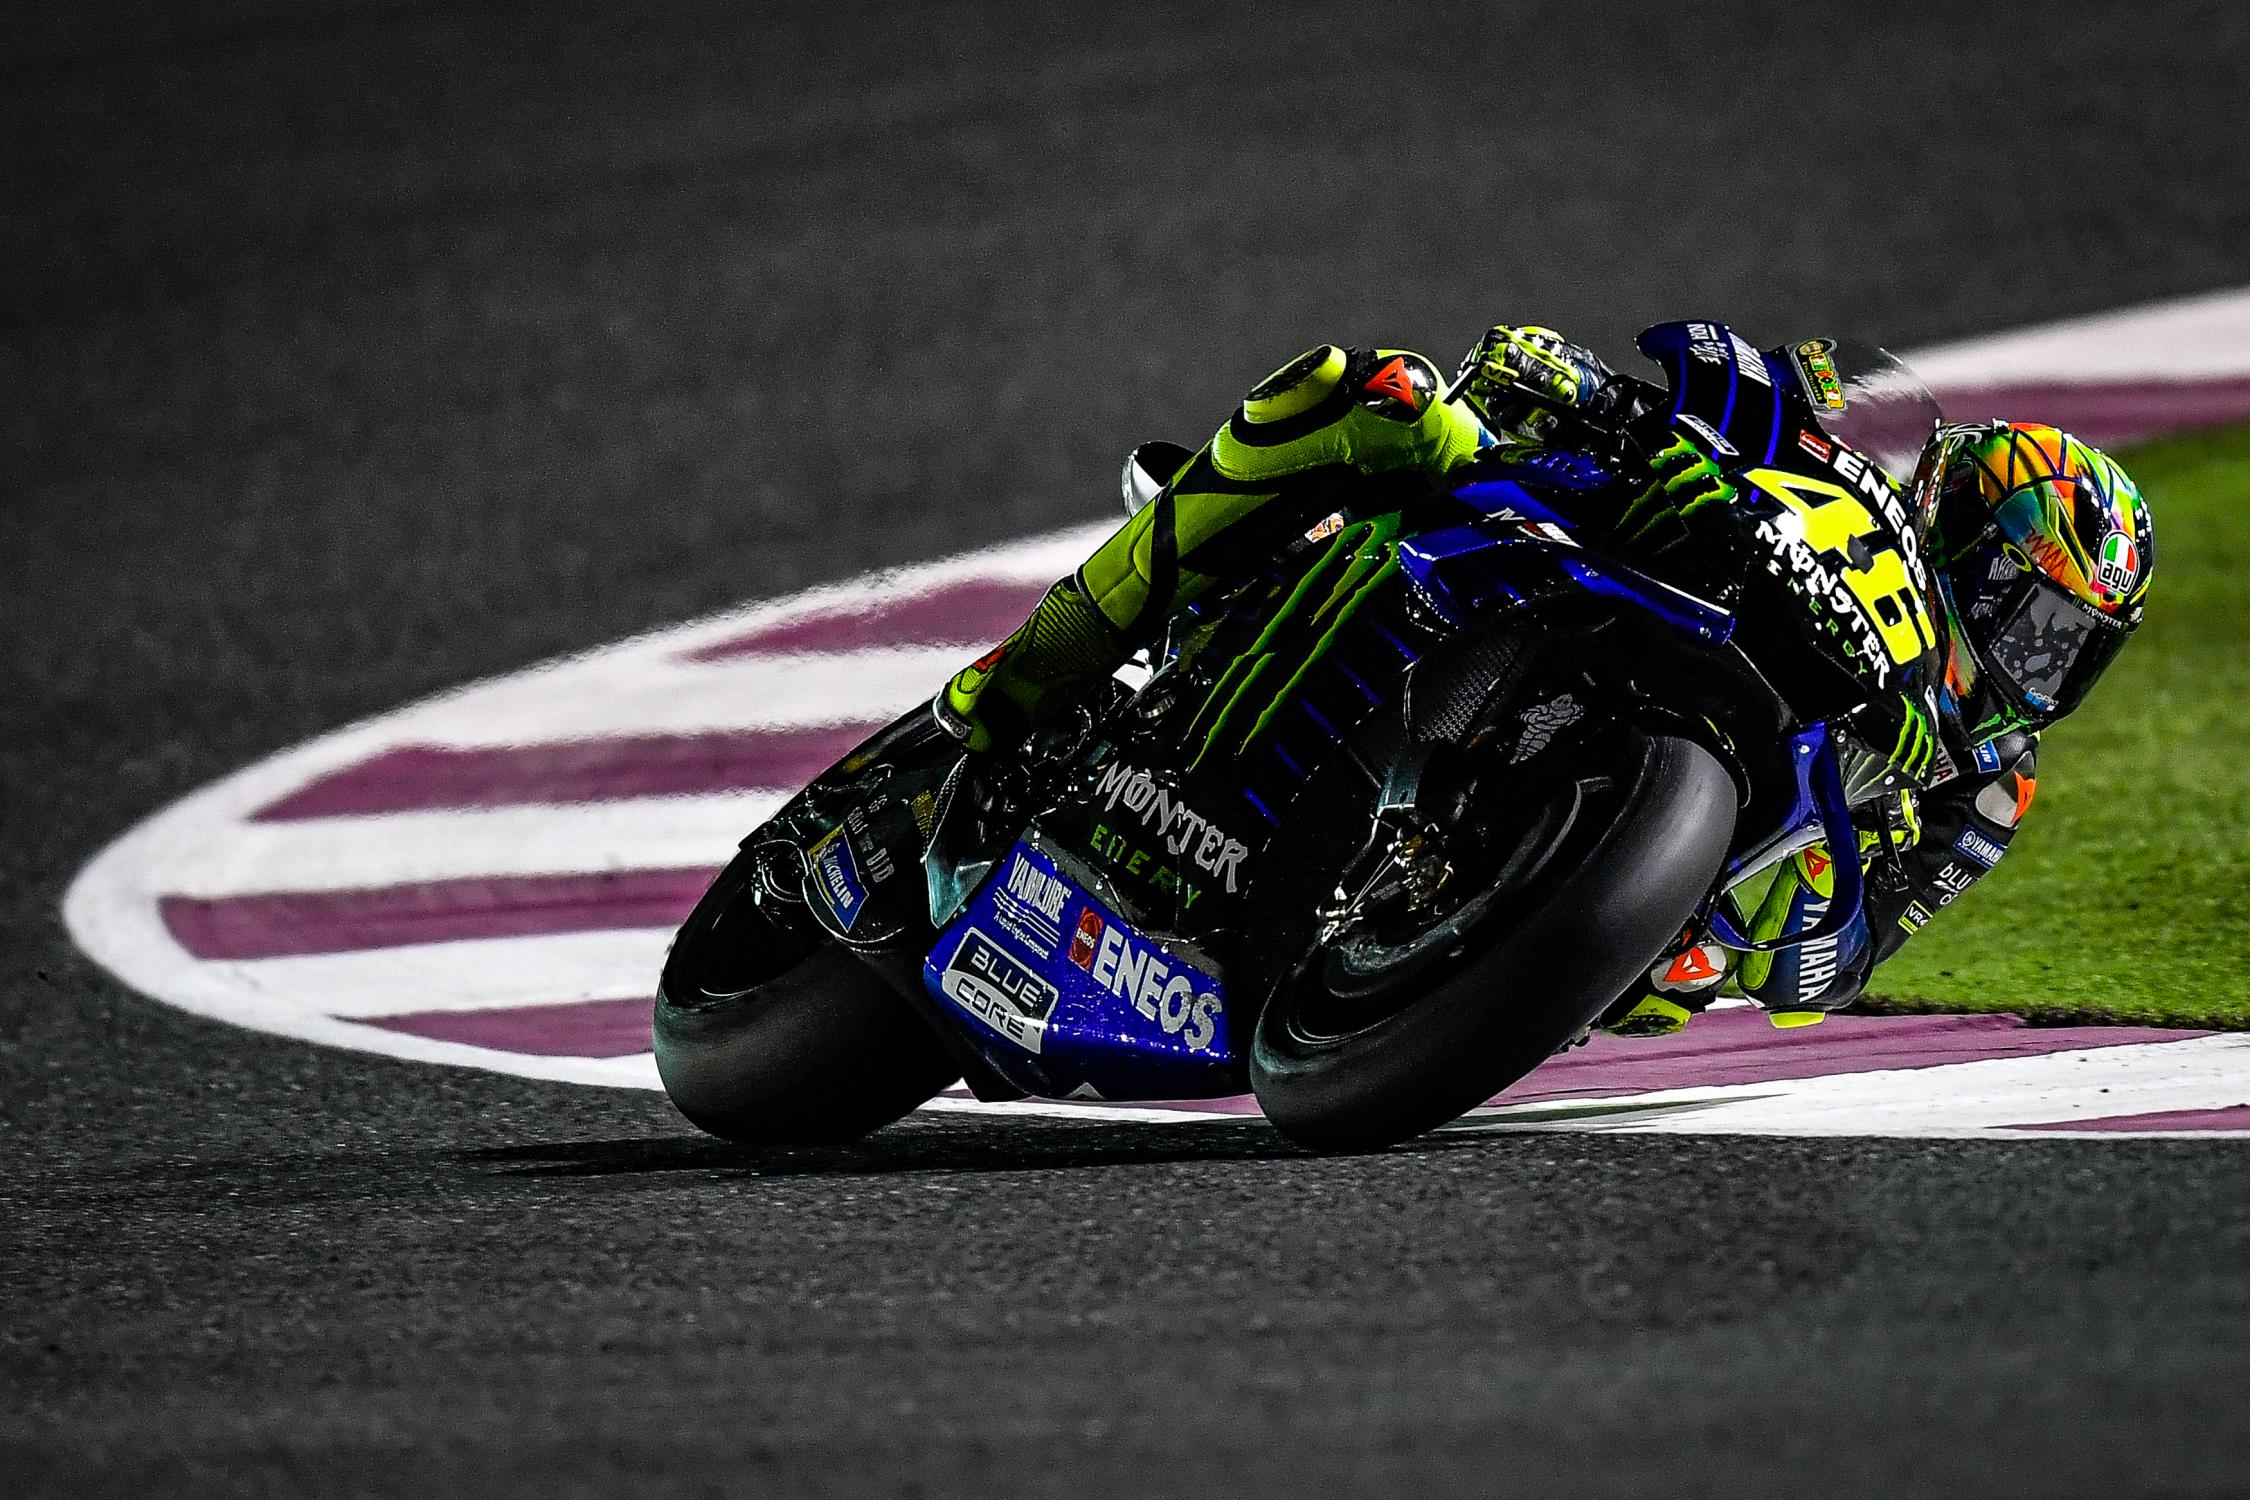 Rossi Phone Wallpaper Motogp